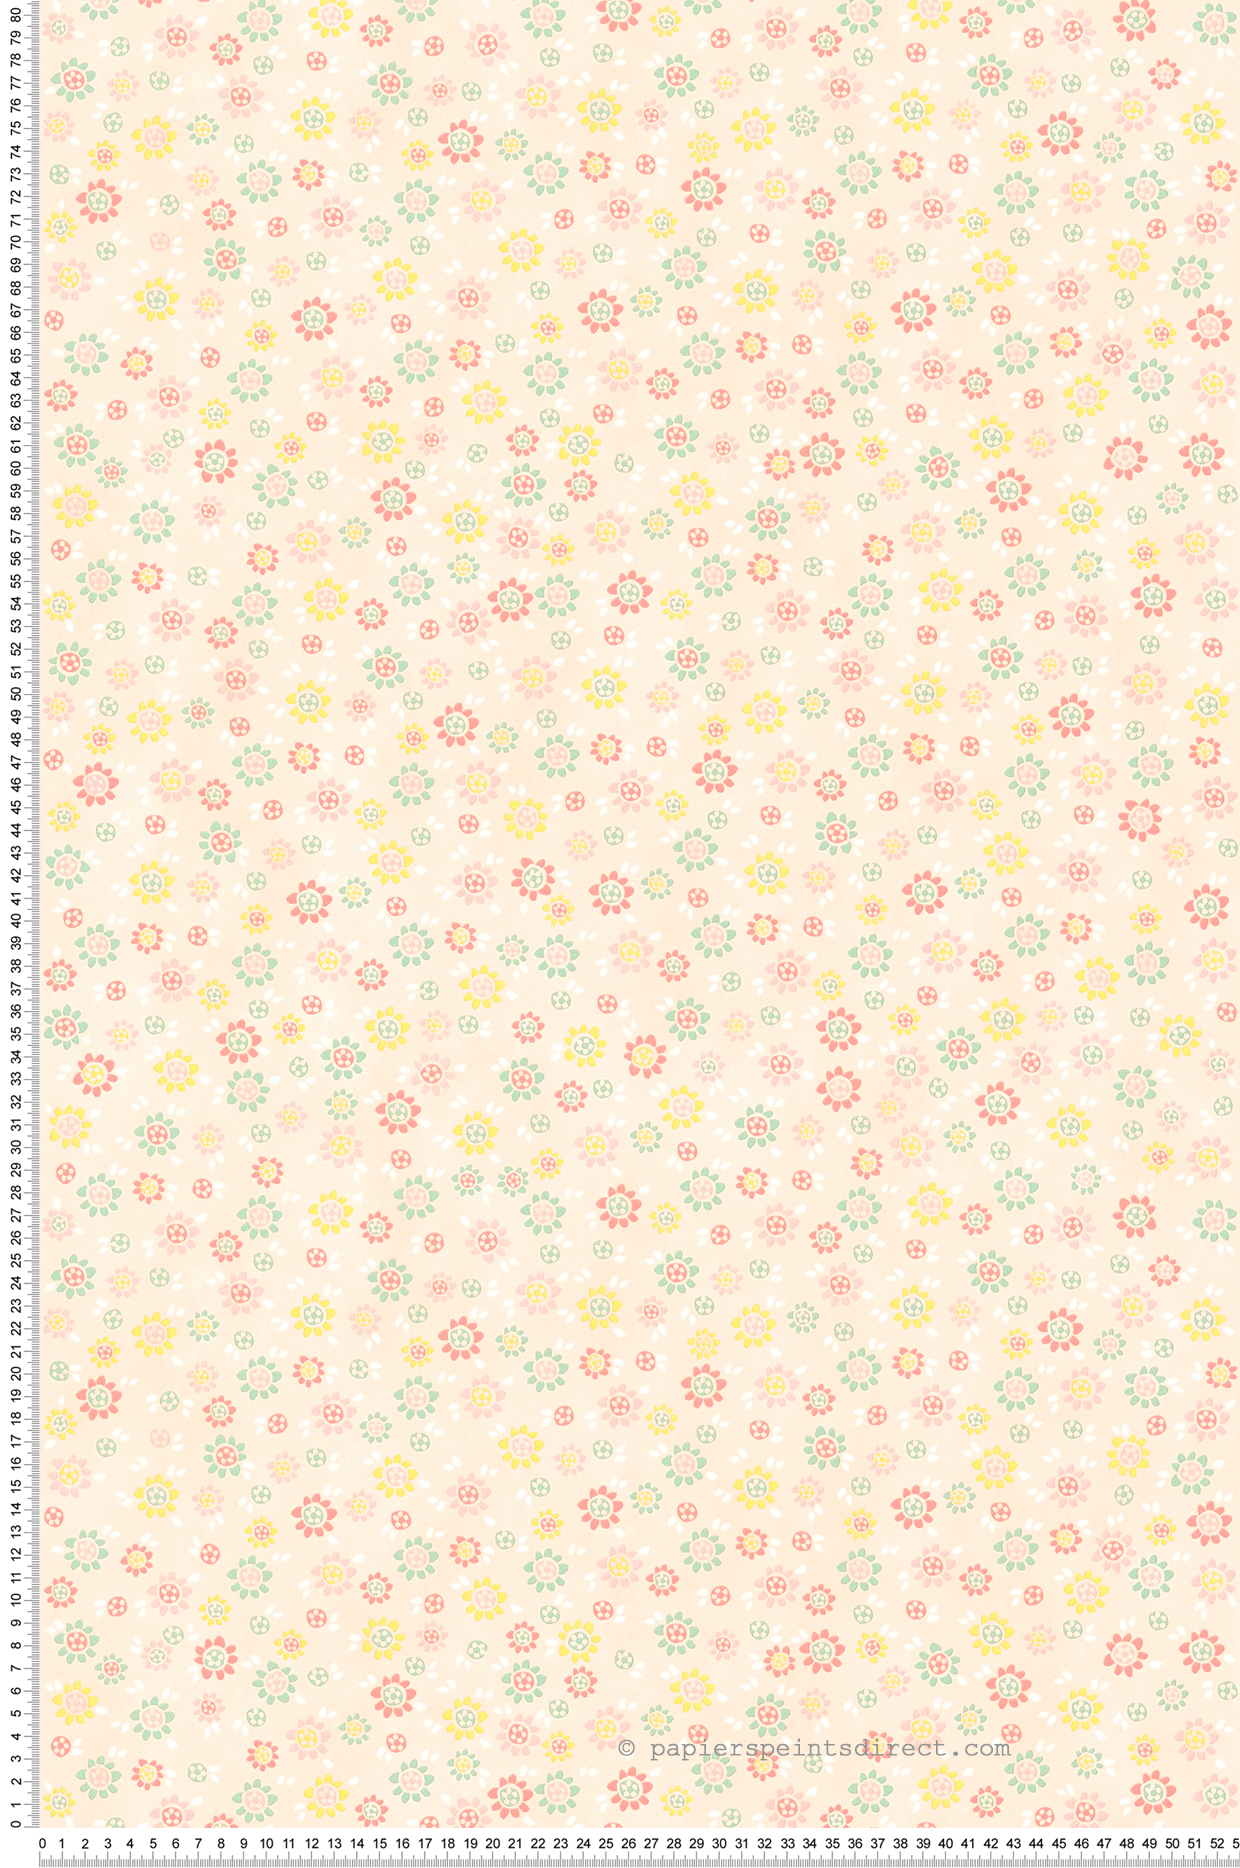 Papier peint Floral pastel saumon - It's Time to Dance d'AS Création | Réf. SP04545